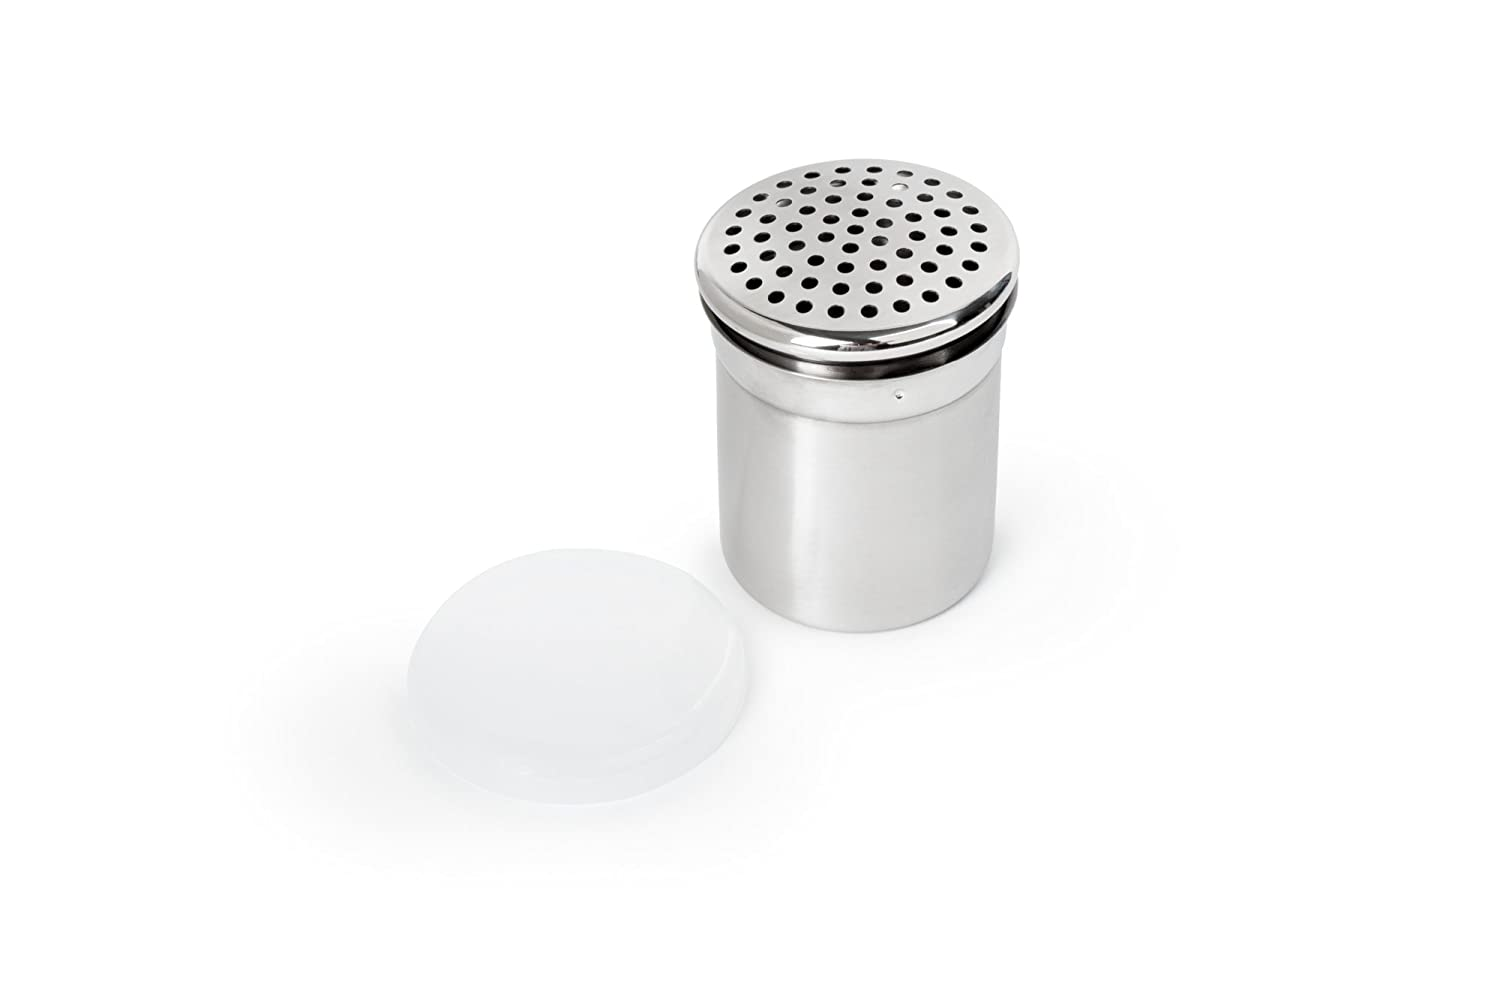 Stainless Steel 3.75-Inch Fox Run 1025 Shaker with Large Holes